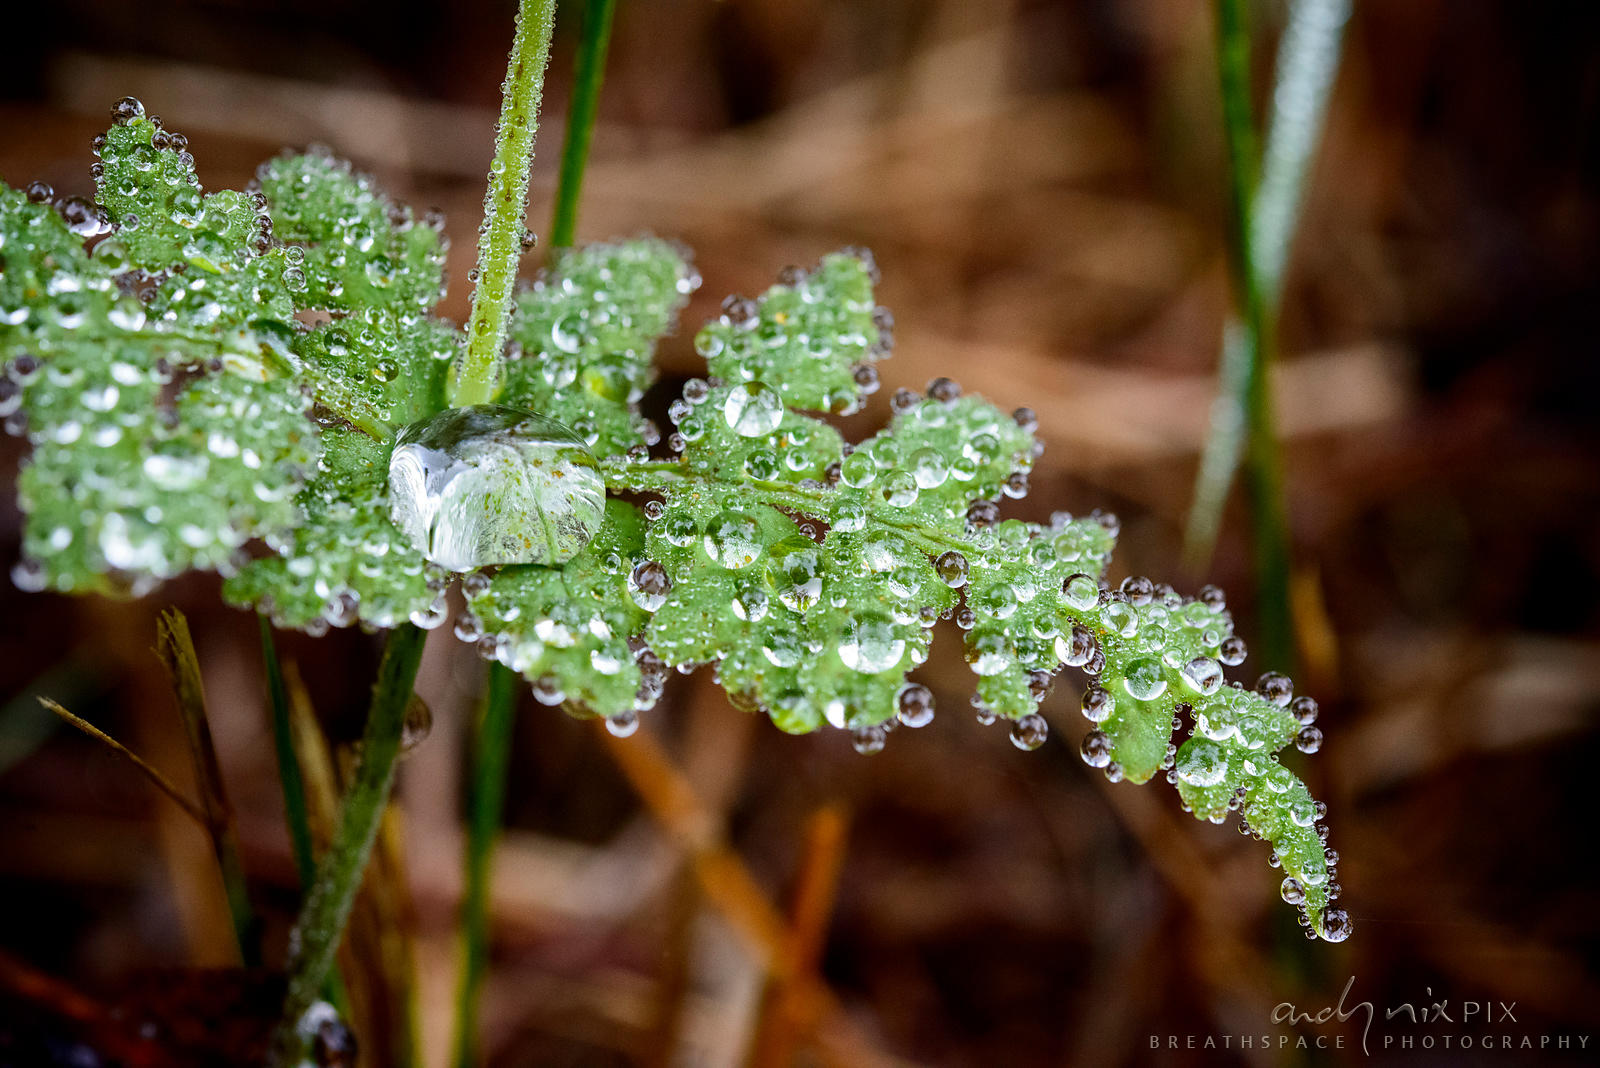 Macro close-up of dew on ferns